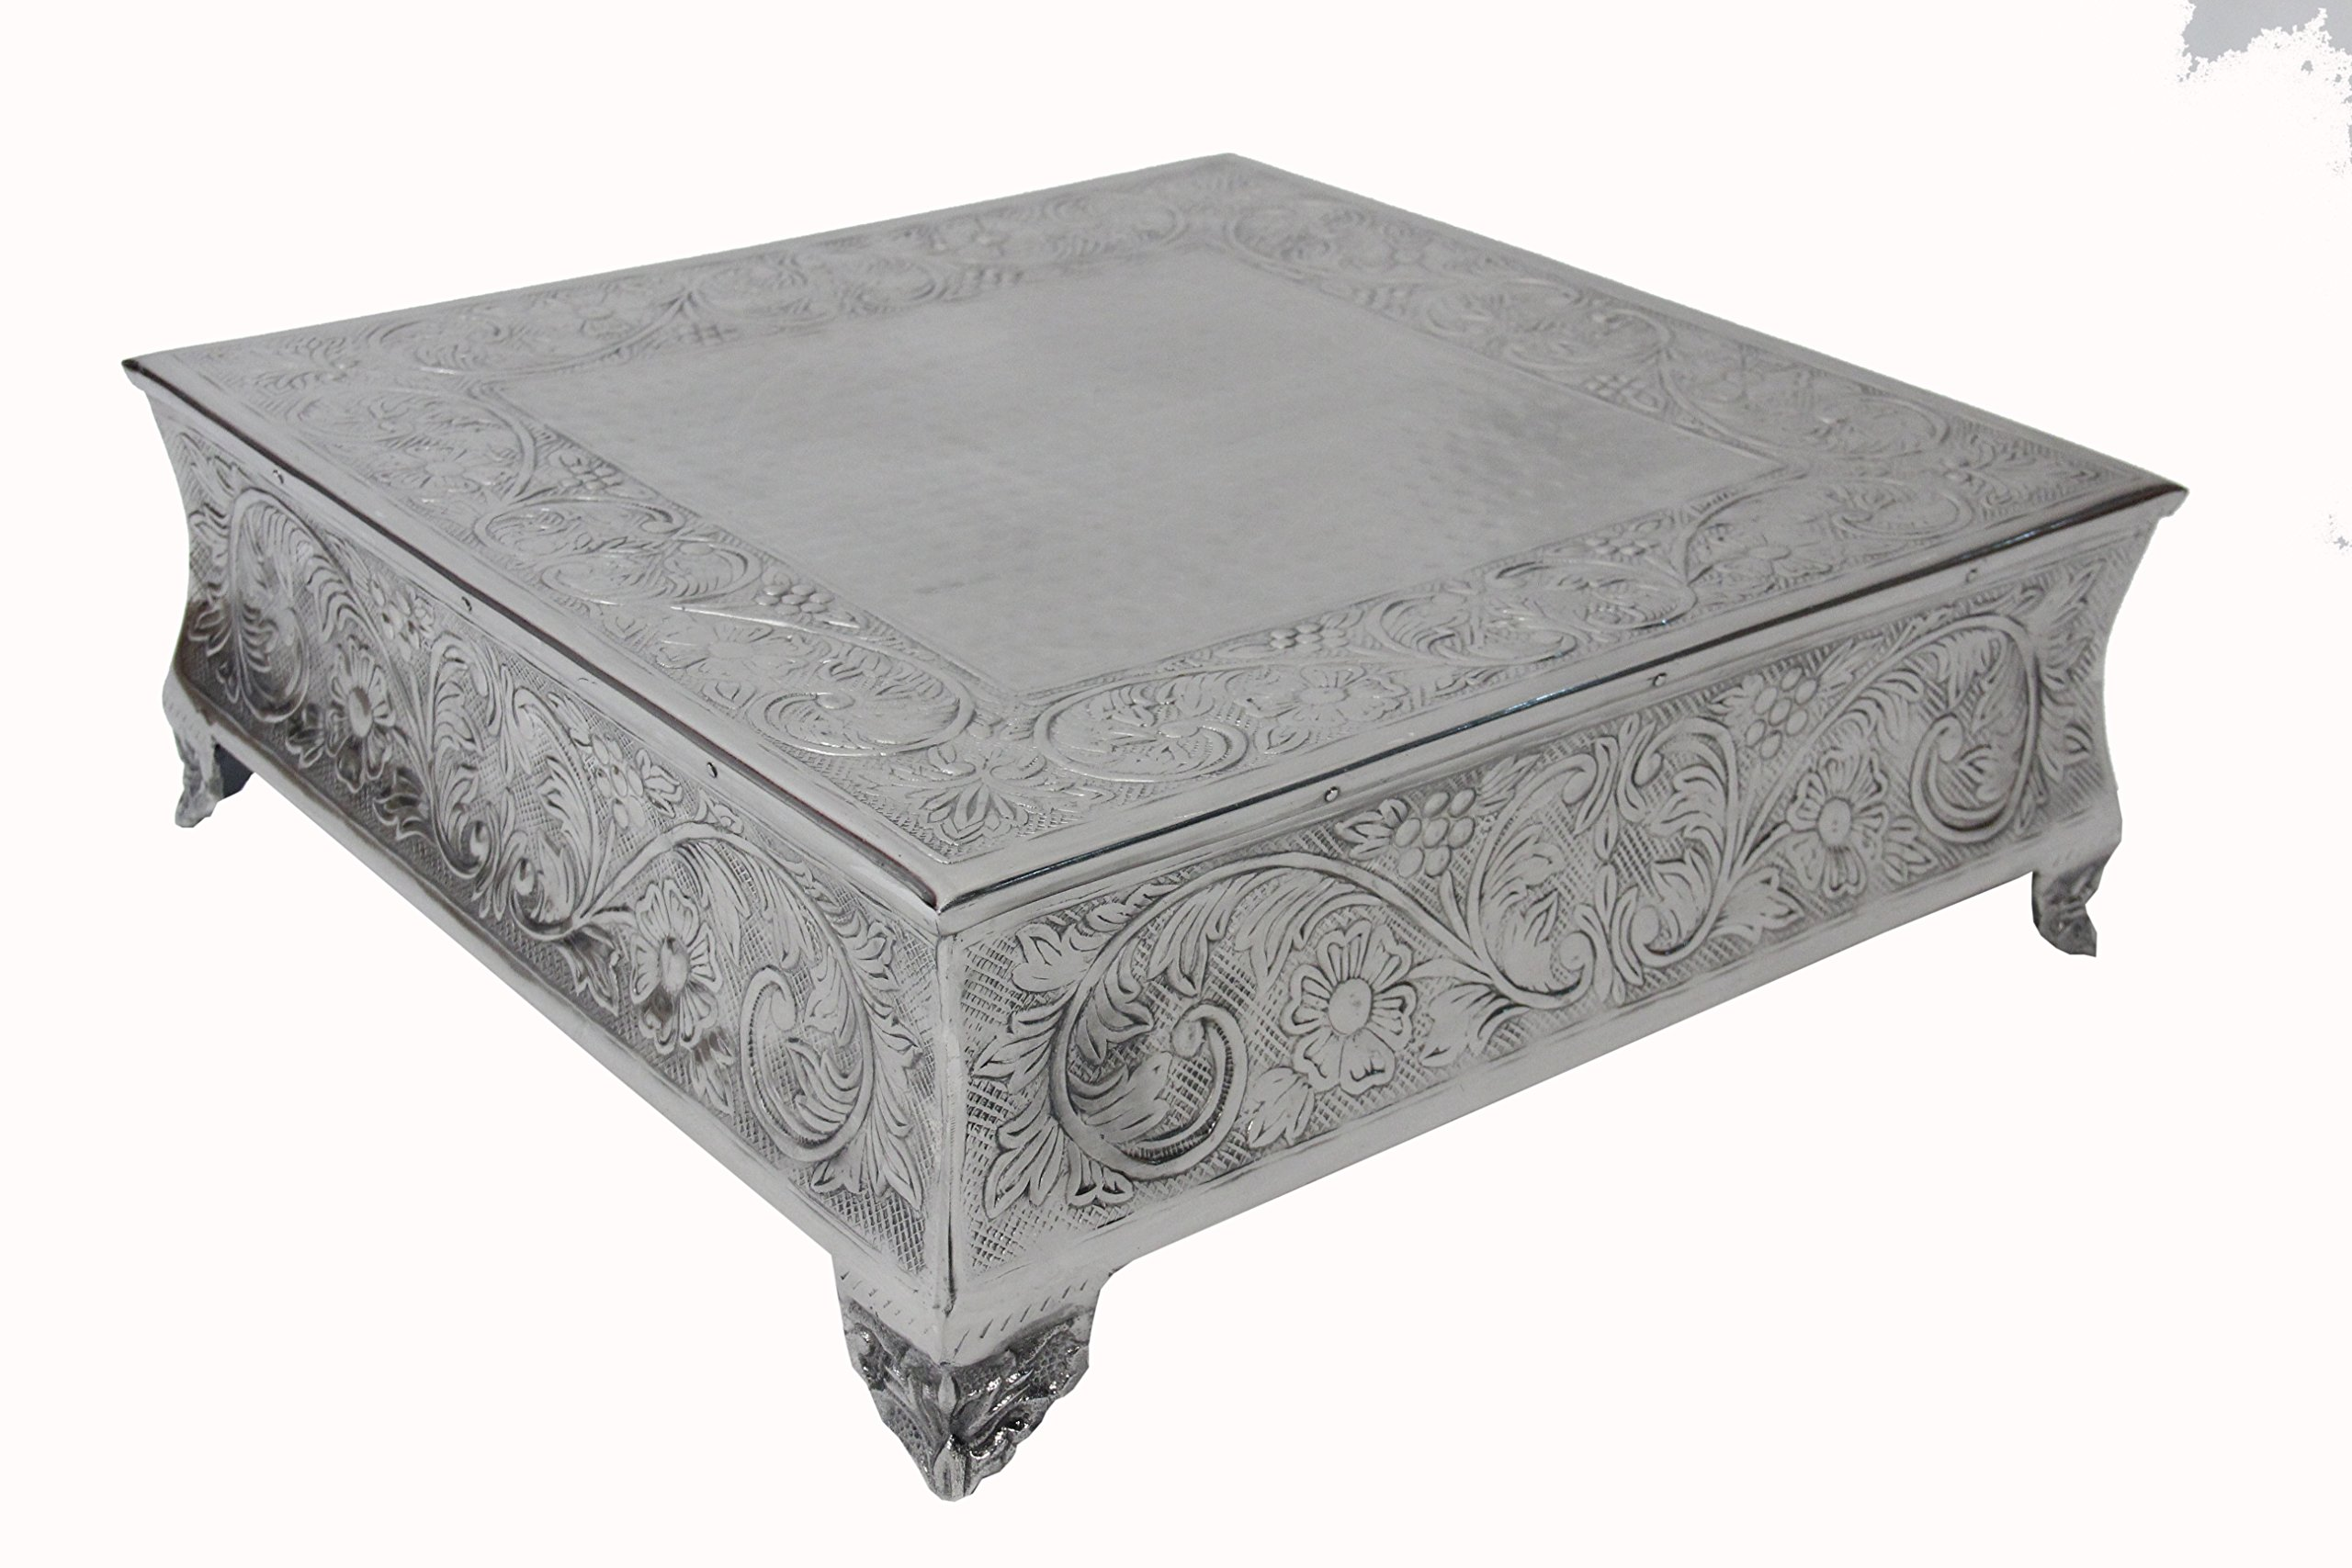 GiftBay Creations 751-22S Wedding Square Cake Stand, 22-Inch, Silver by GiftBay Creations (Image #7)